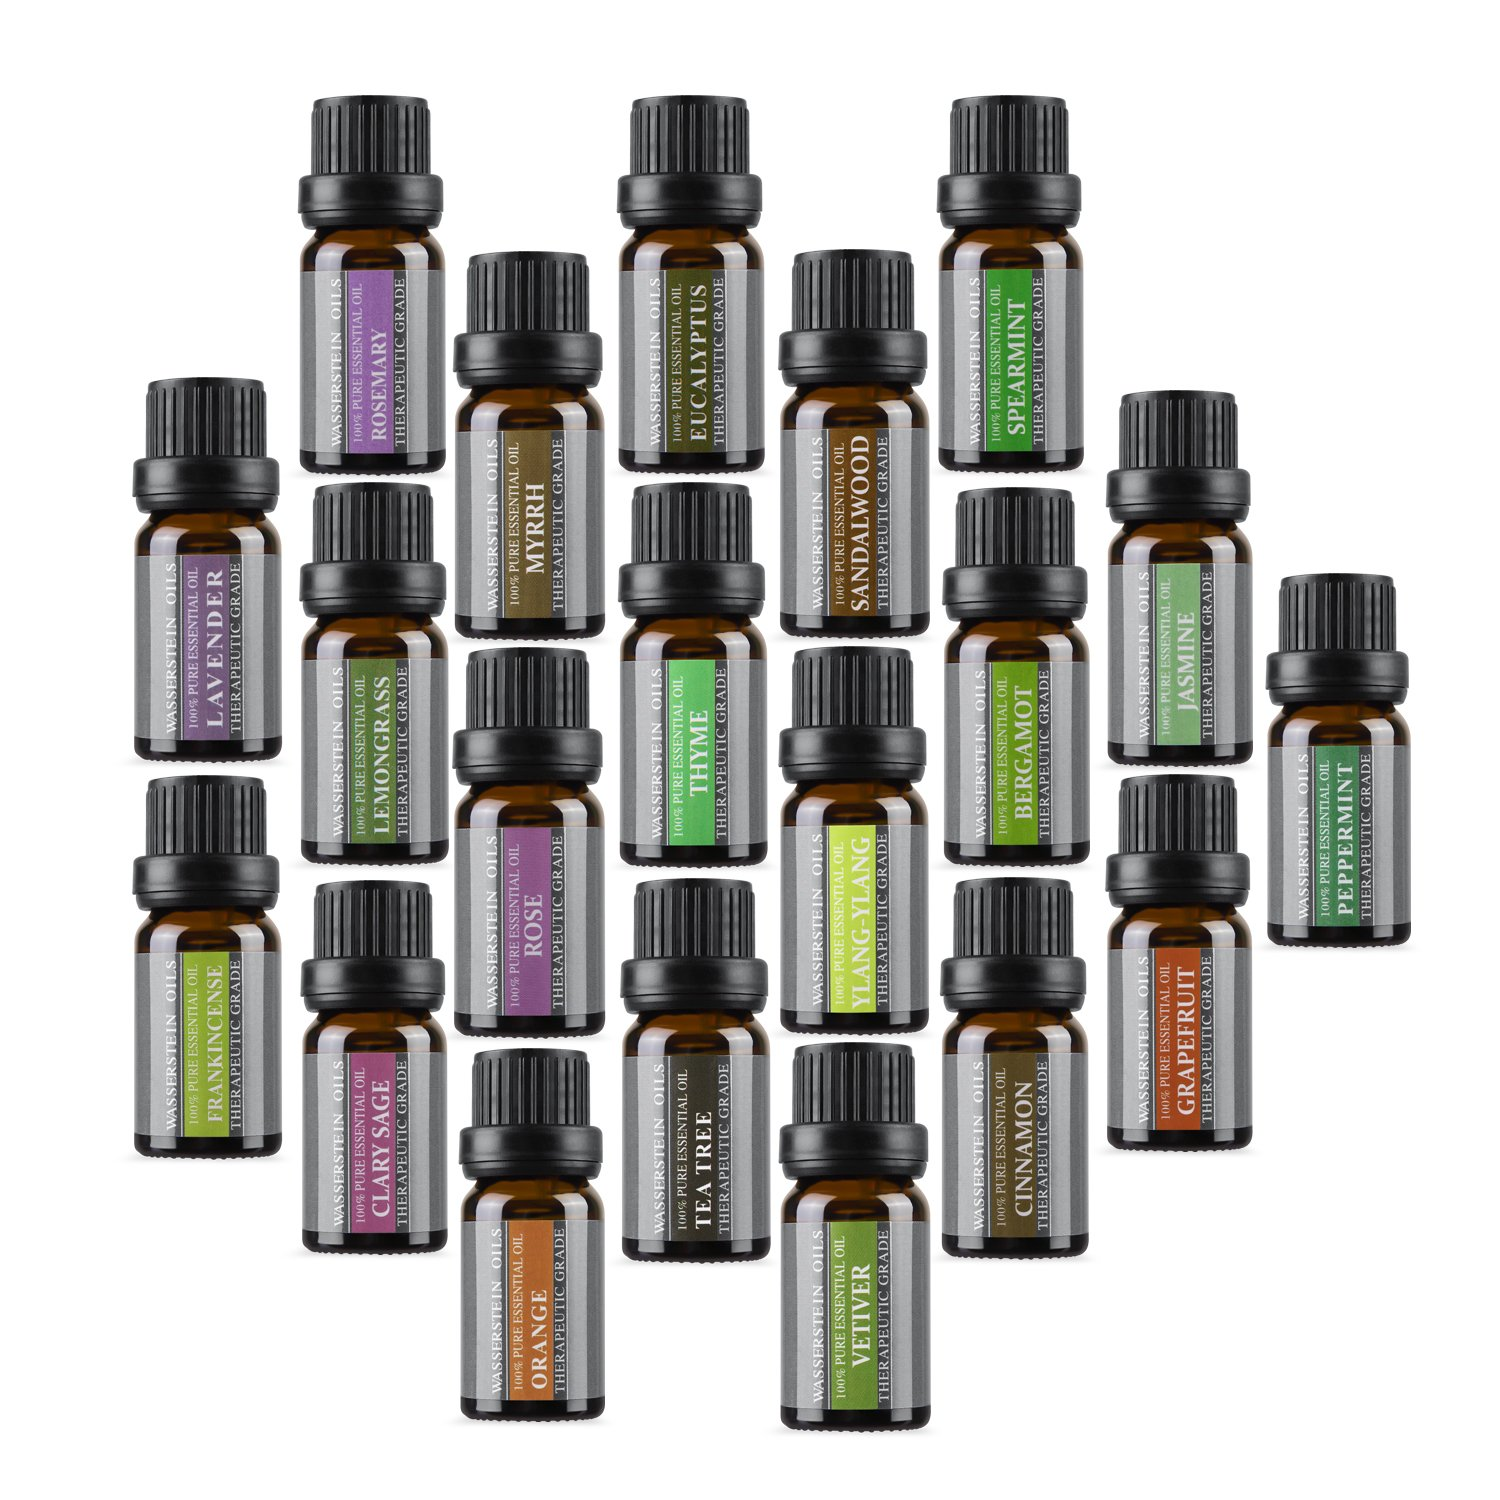 Aromatherapy Oils 100% Pure Basic Essential Oil Gift Set by Wasserstein (Top 20) by Wasserstein